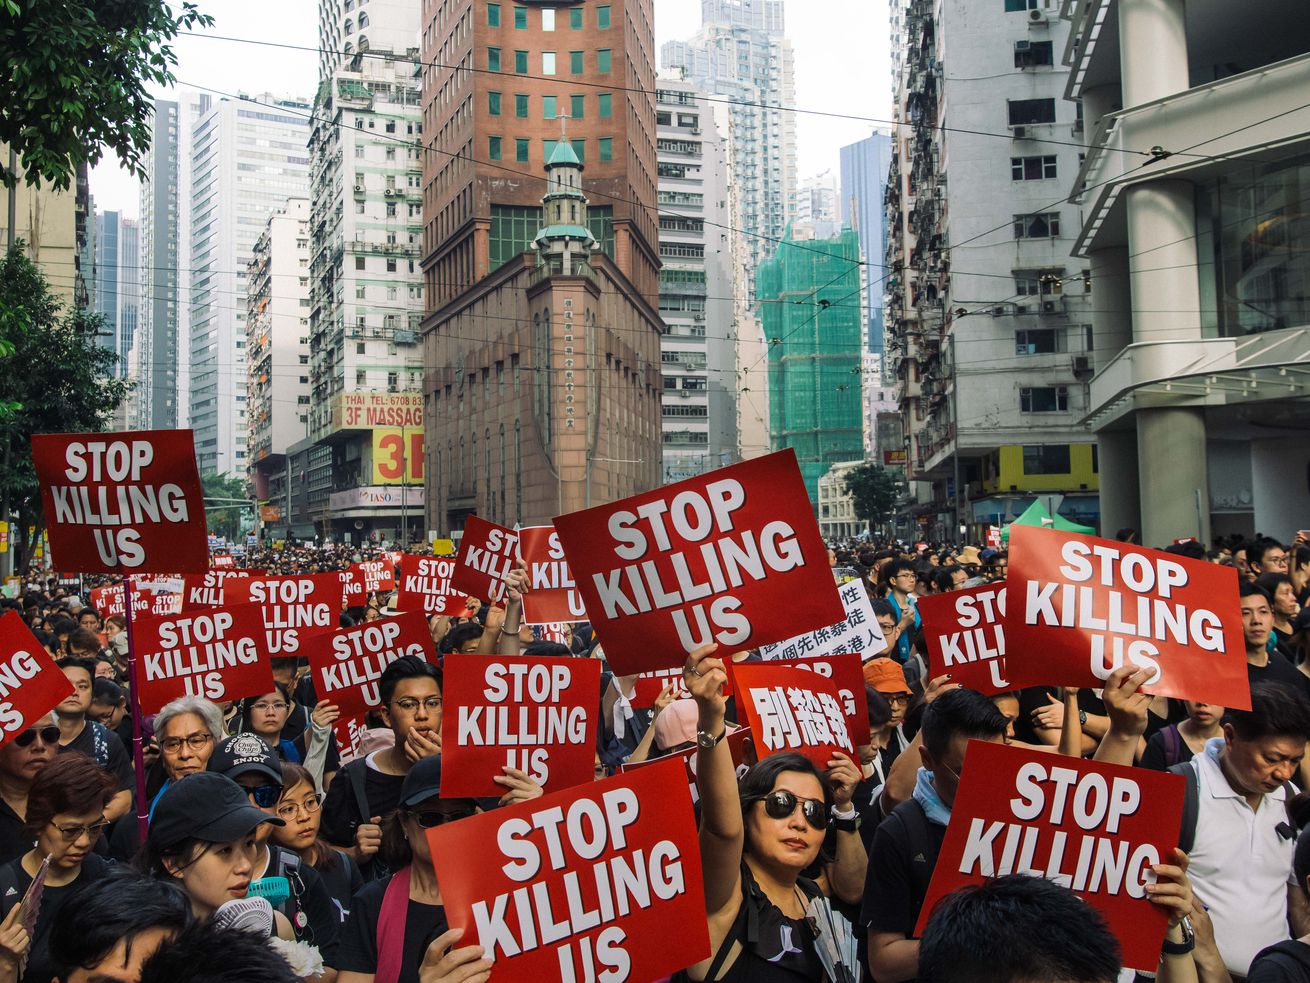 Protesters clad in black take to Hong Kong's streets, demonstrating against an extradition bill.